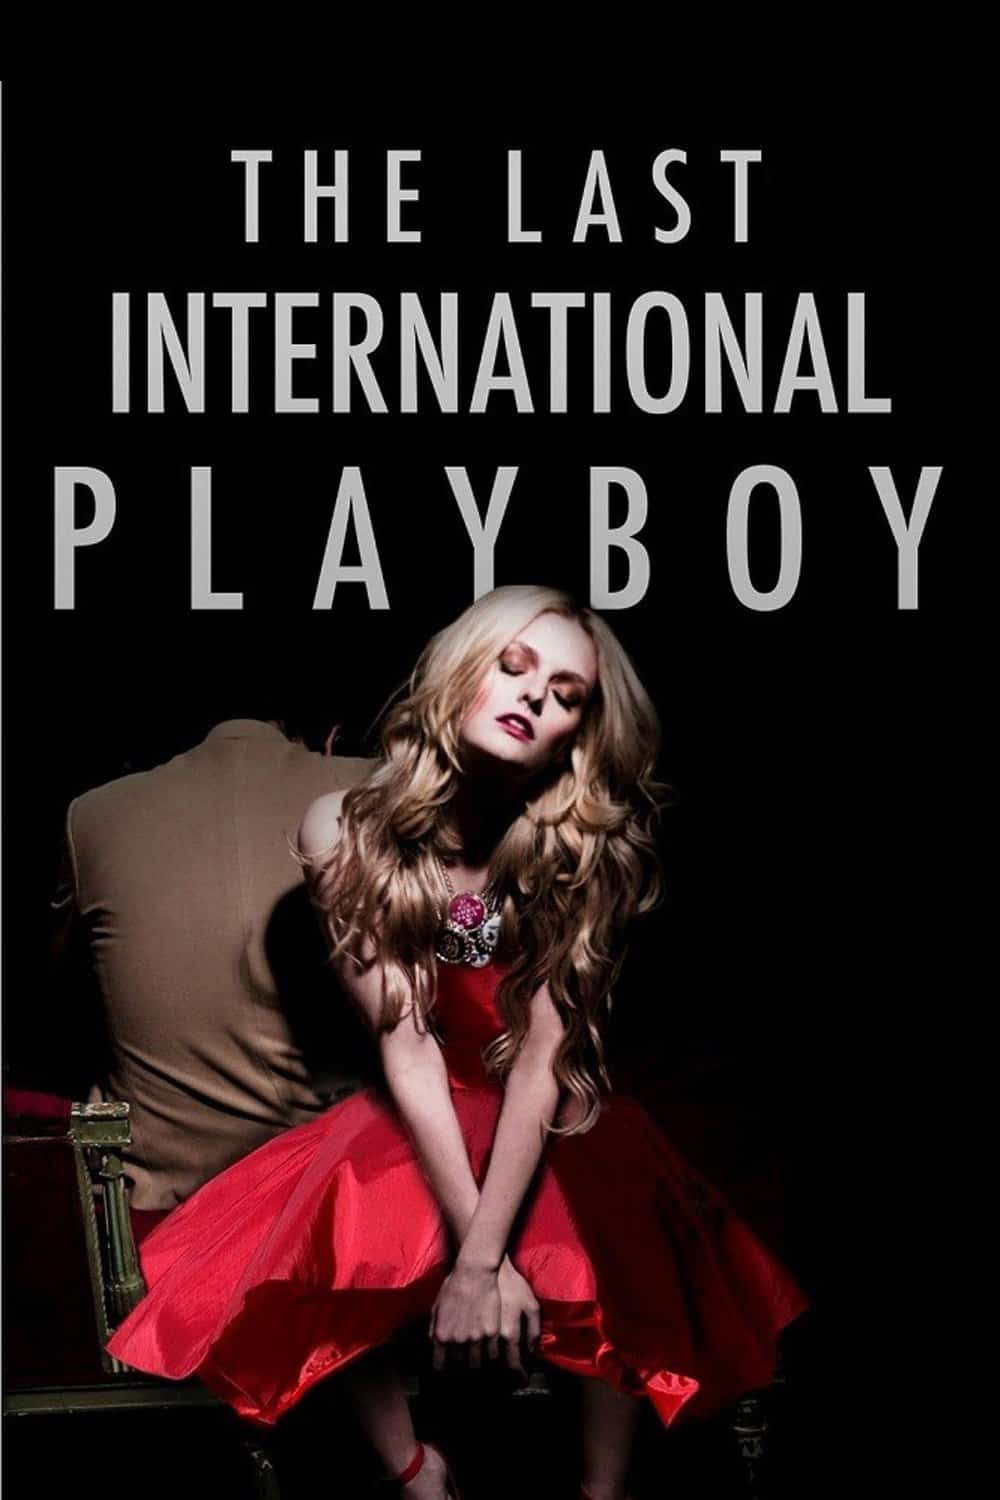 The Last International Playboy, 2008